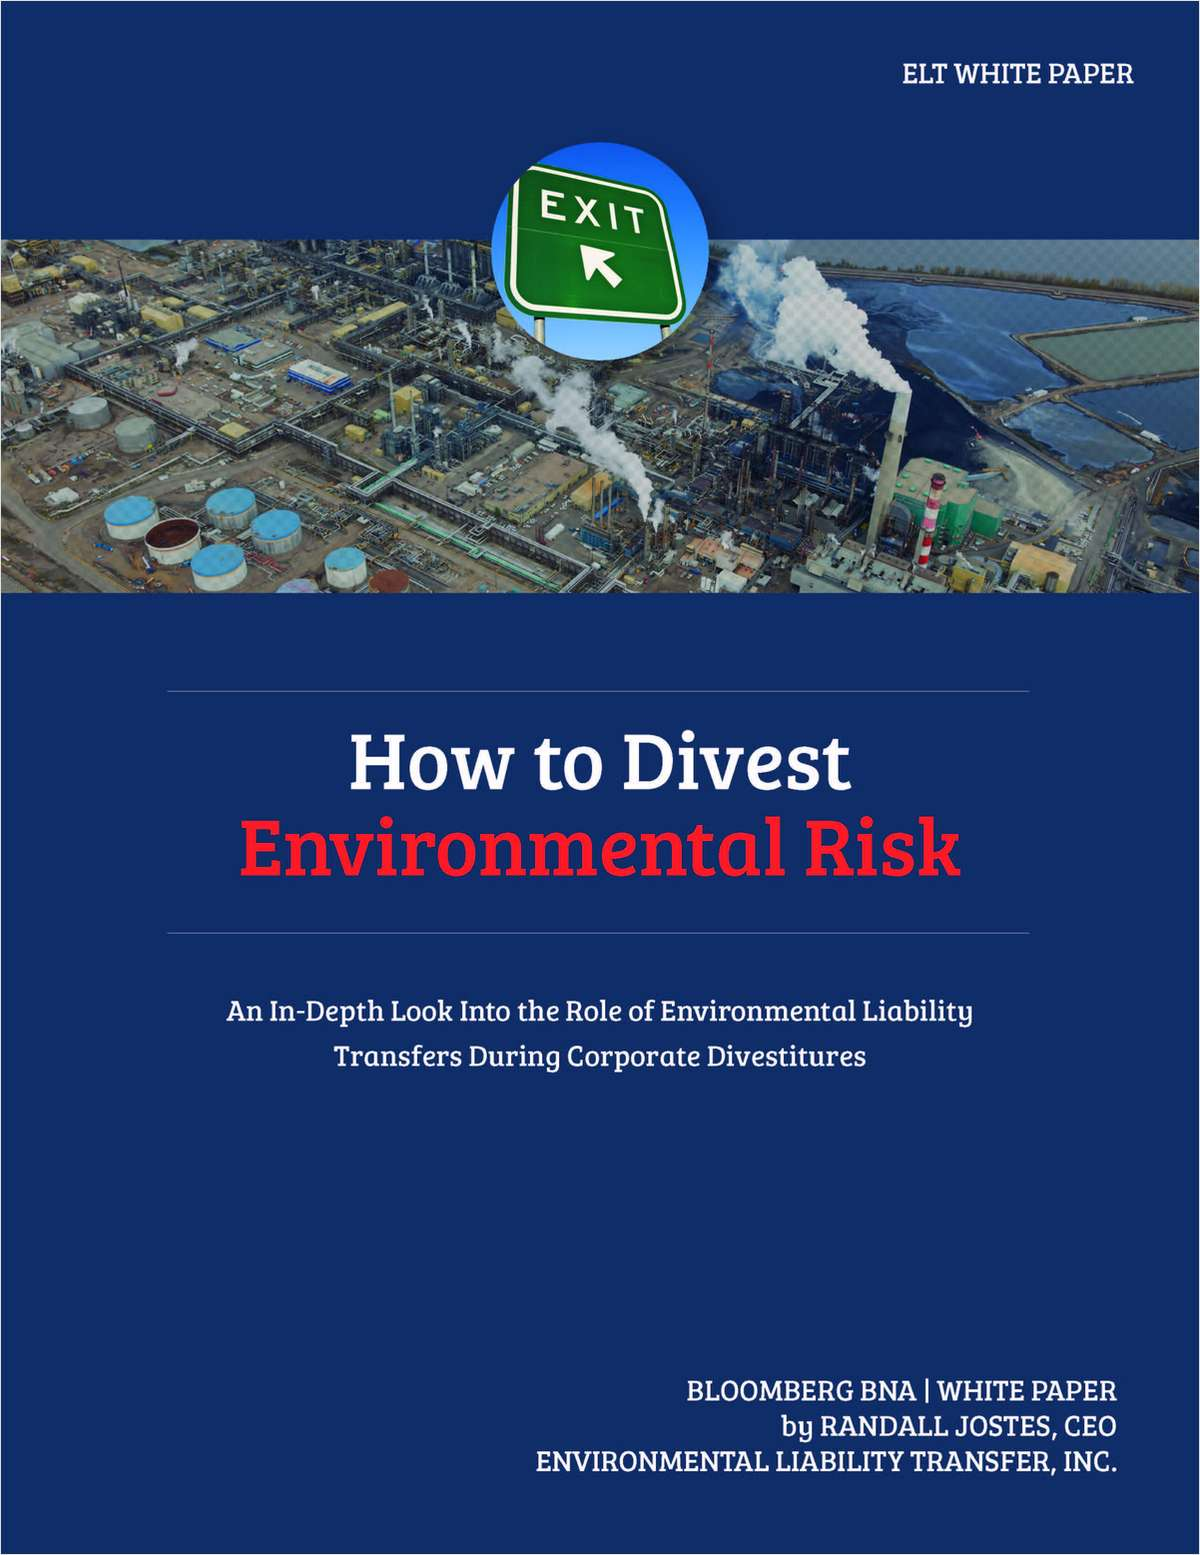 How to Divest Environmental Risk